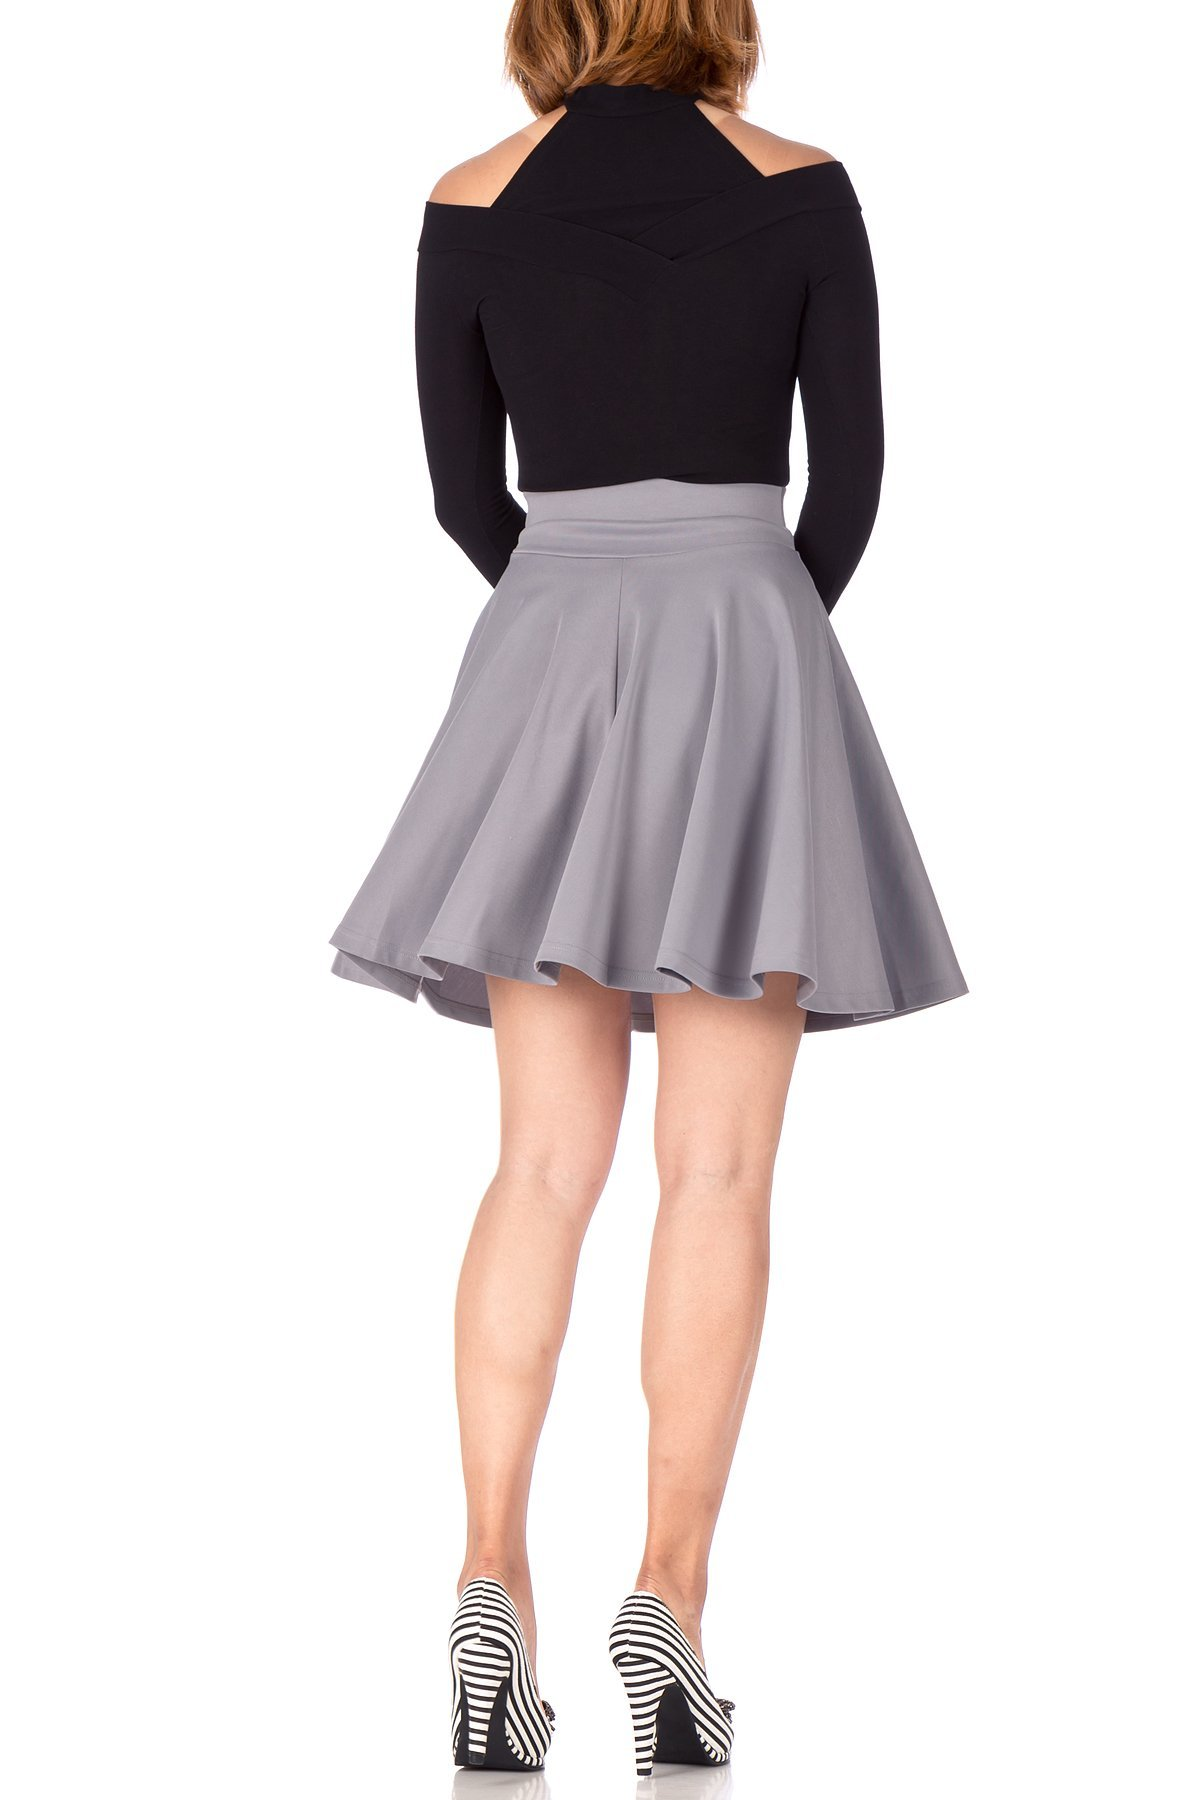 Breathtaking High Waist A line Circle Full Flared Skater Mini Skirt Light Gray 04 1